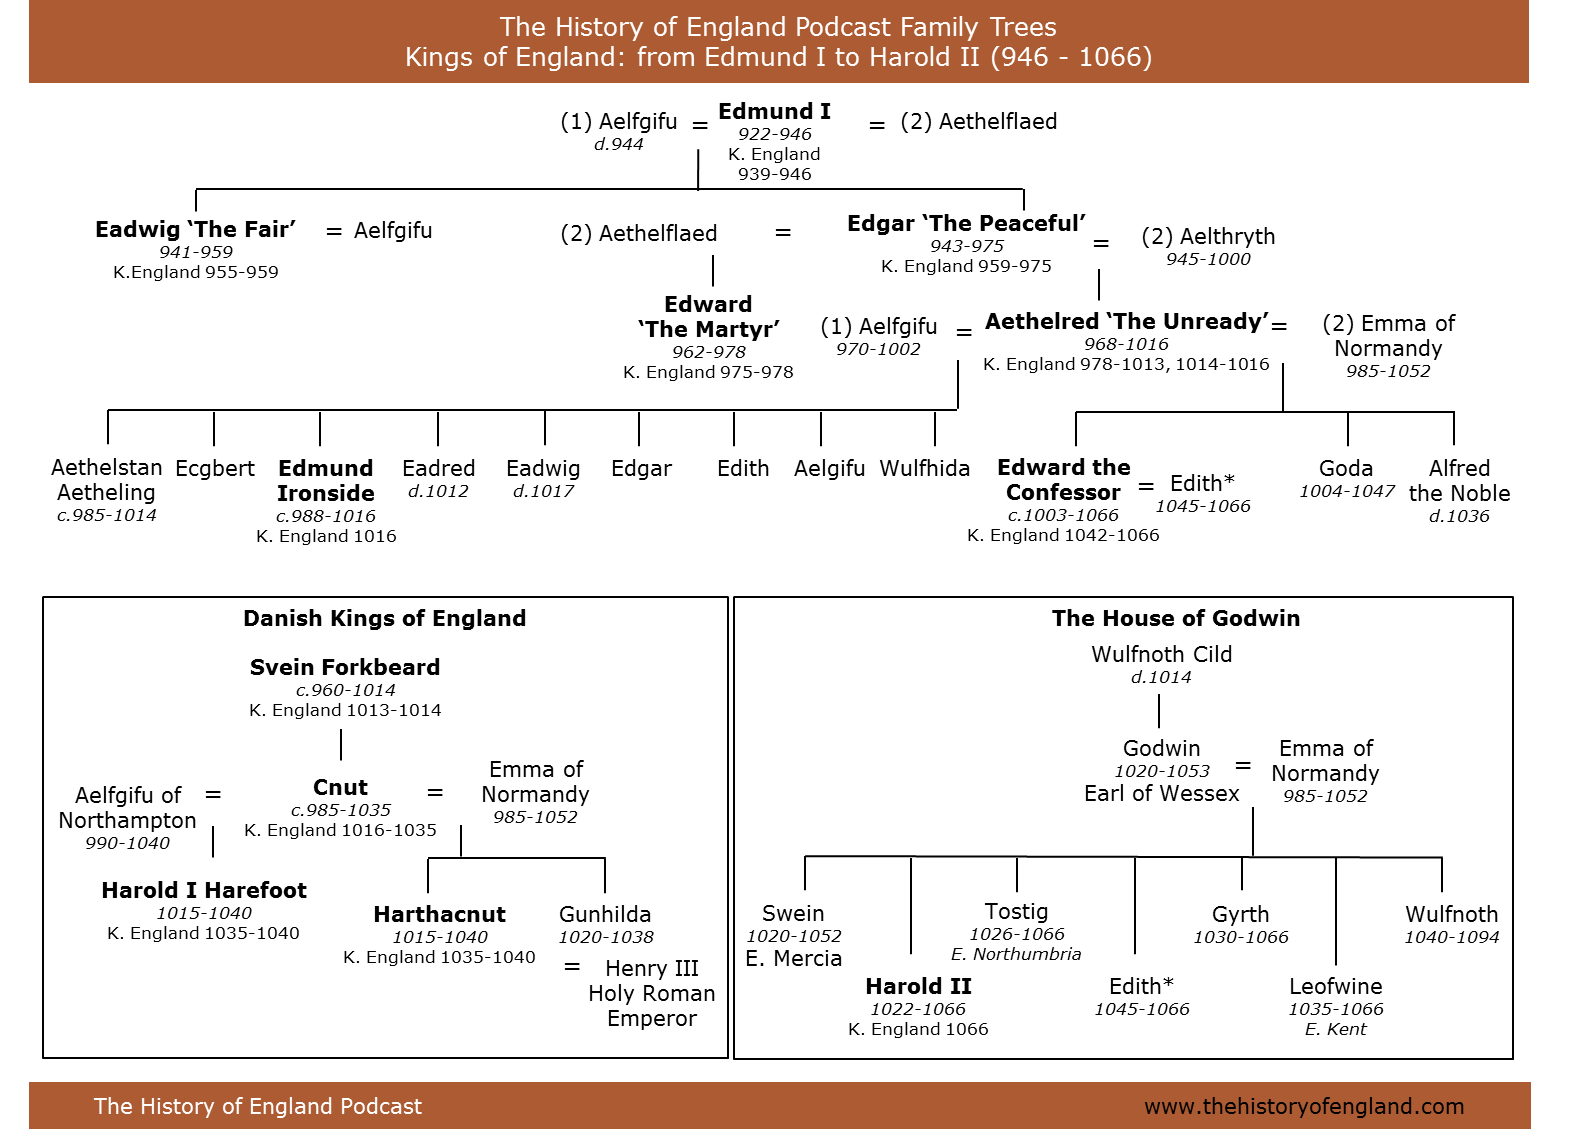 english royal bloodline the fall of the pentagram five illuminati  family trees the history of england family tree of anglo saxona nd danish kings of england